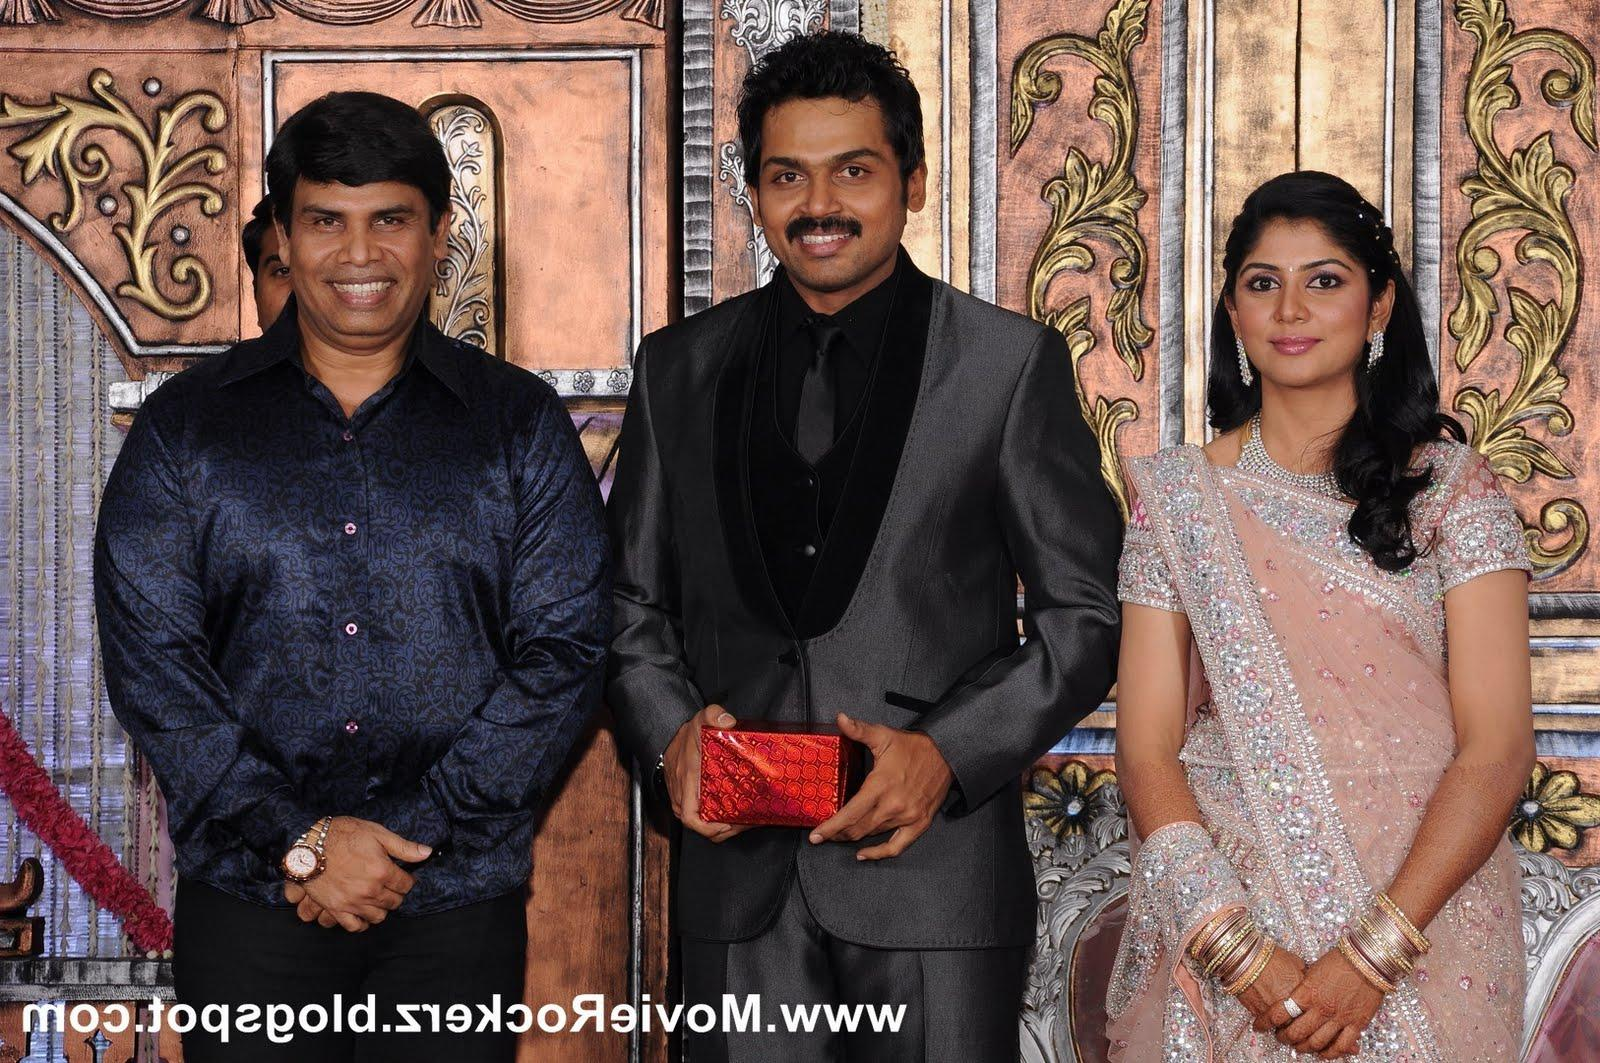 The Wedding Reception Of Karthi Sivakumar And Ranjini - NTR Fanz Discussion